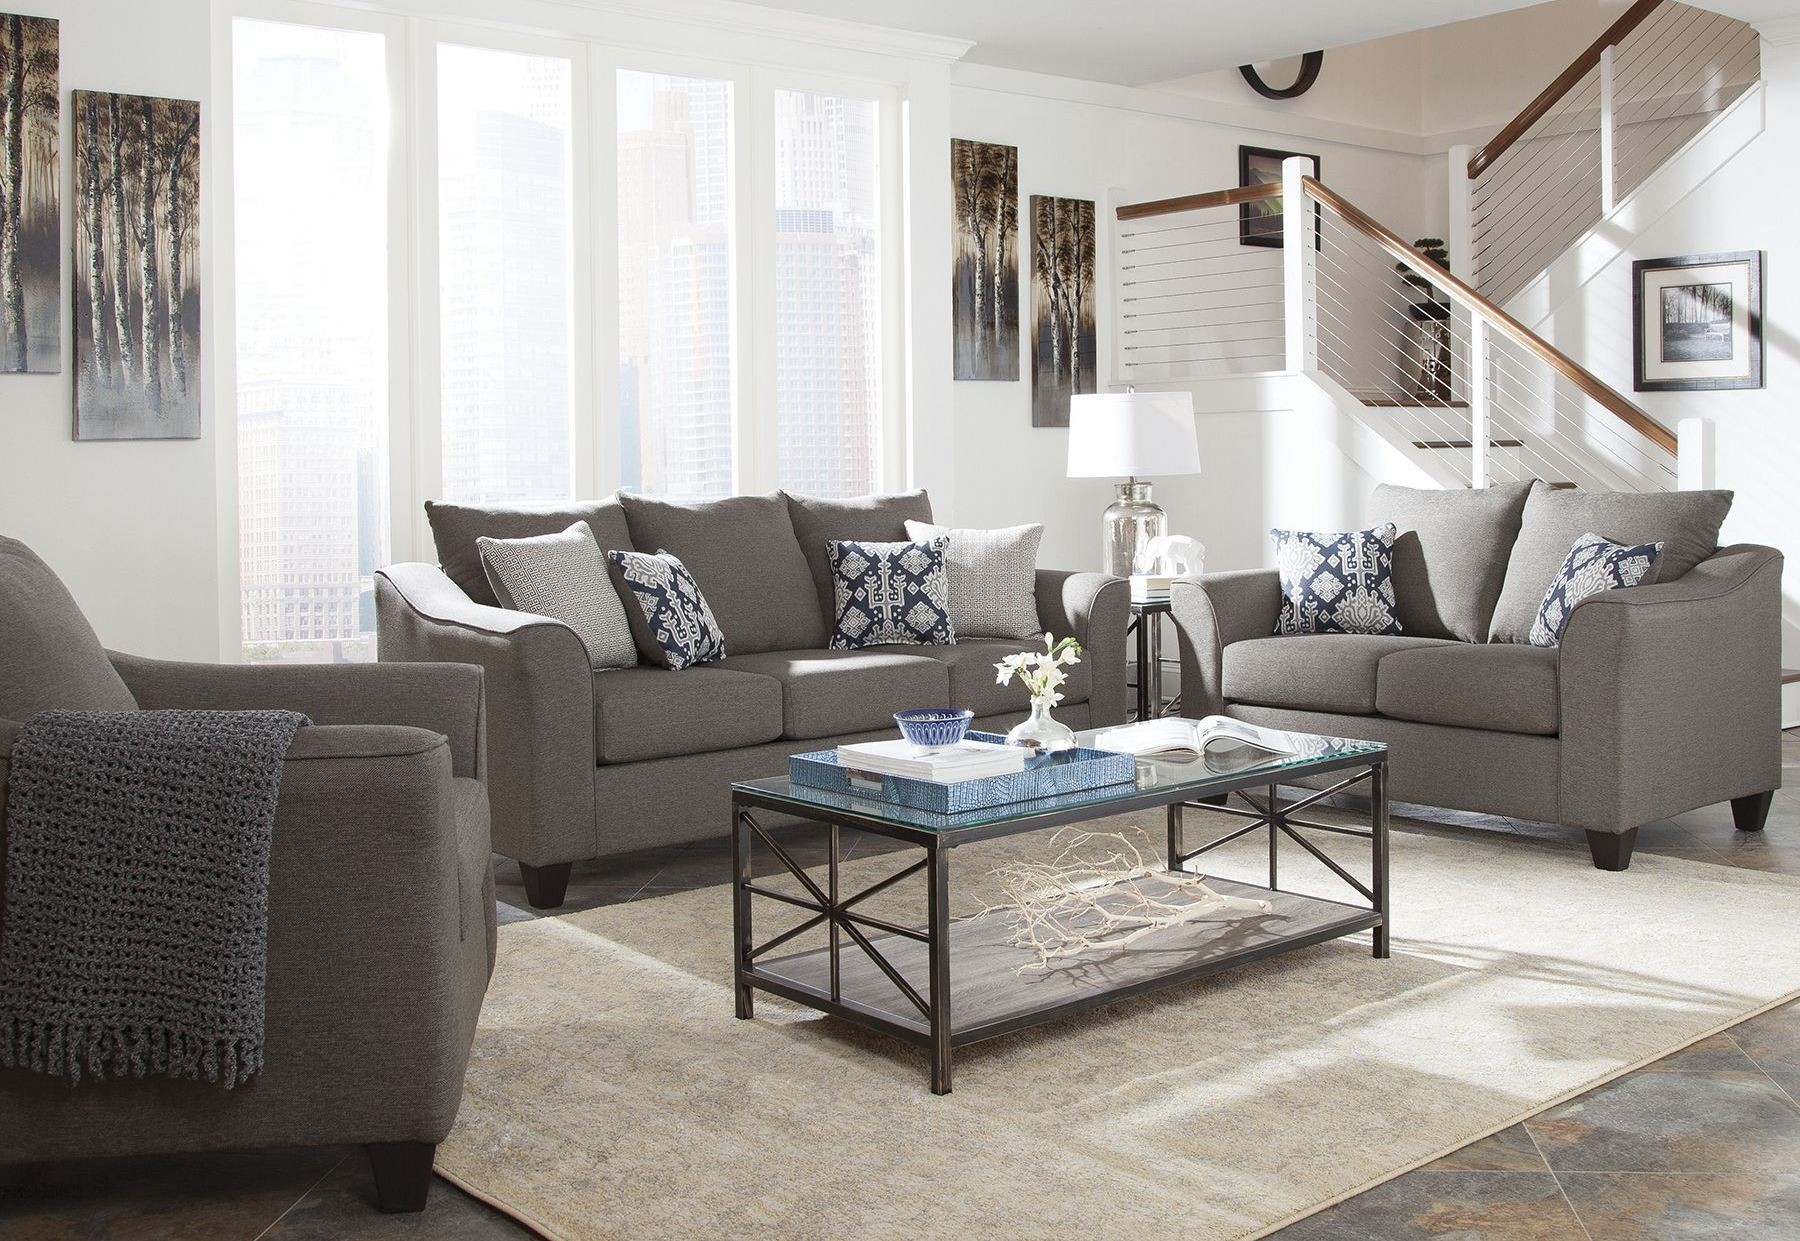 Grey Living Room Furniture Set : Salizar Gray Living Room Set from Coaster  Coleman Furniture